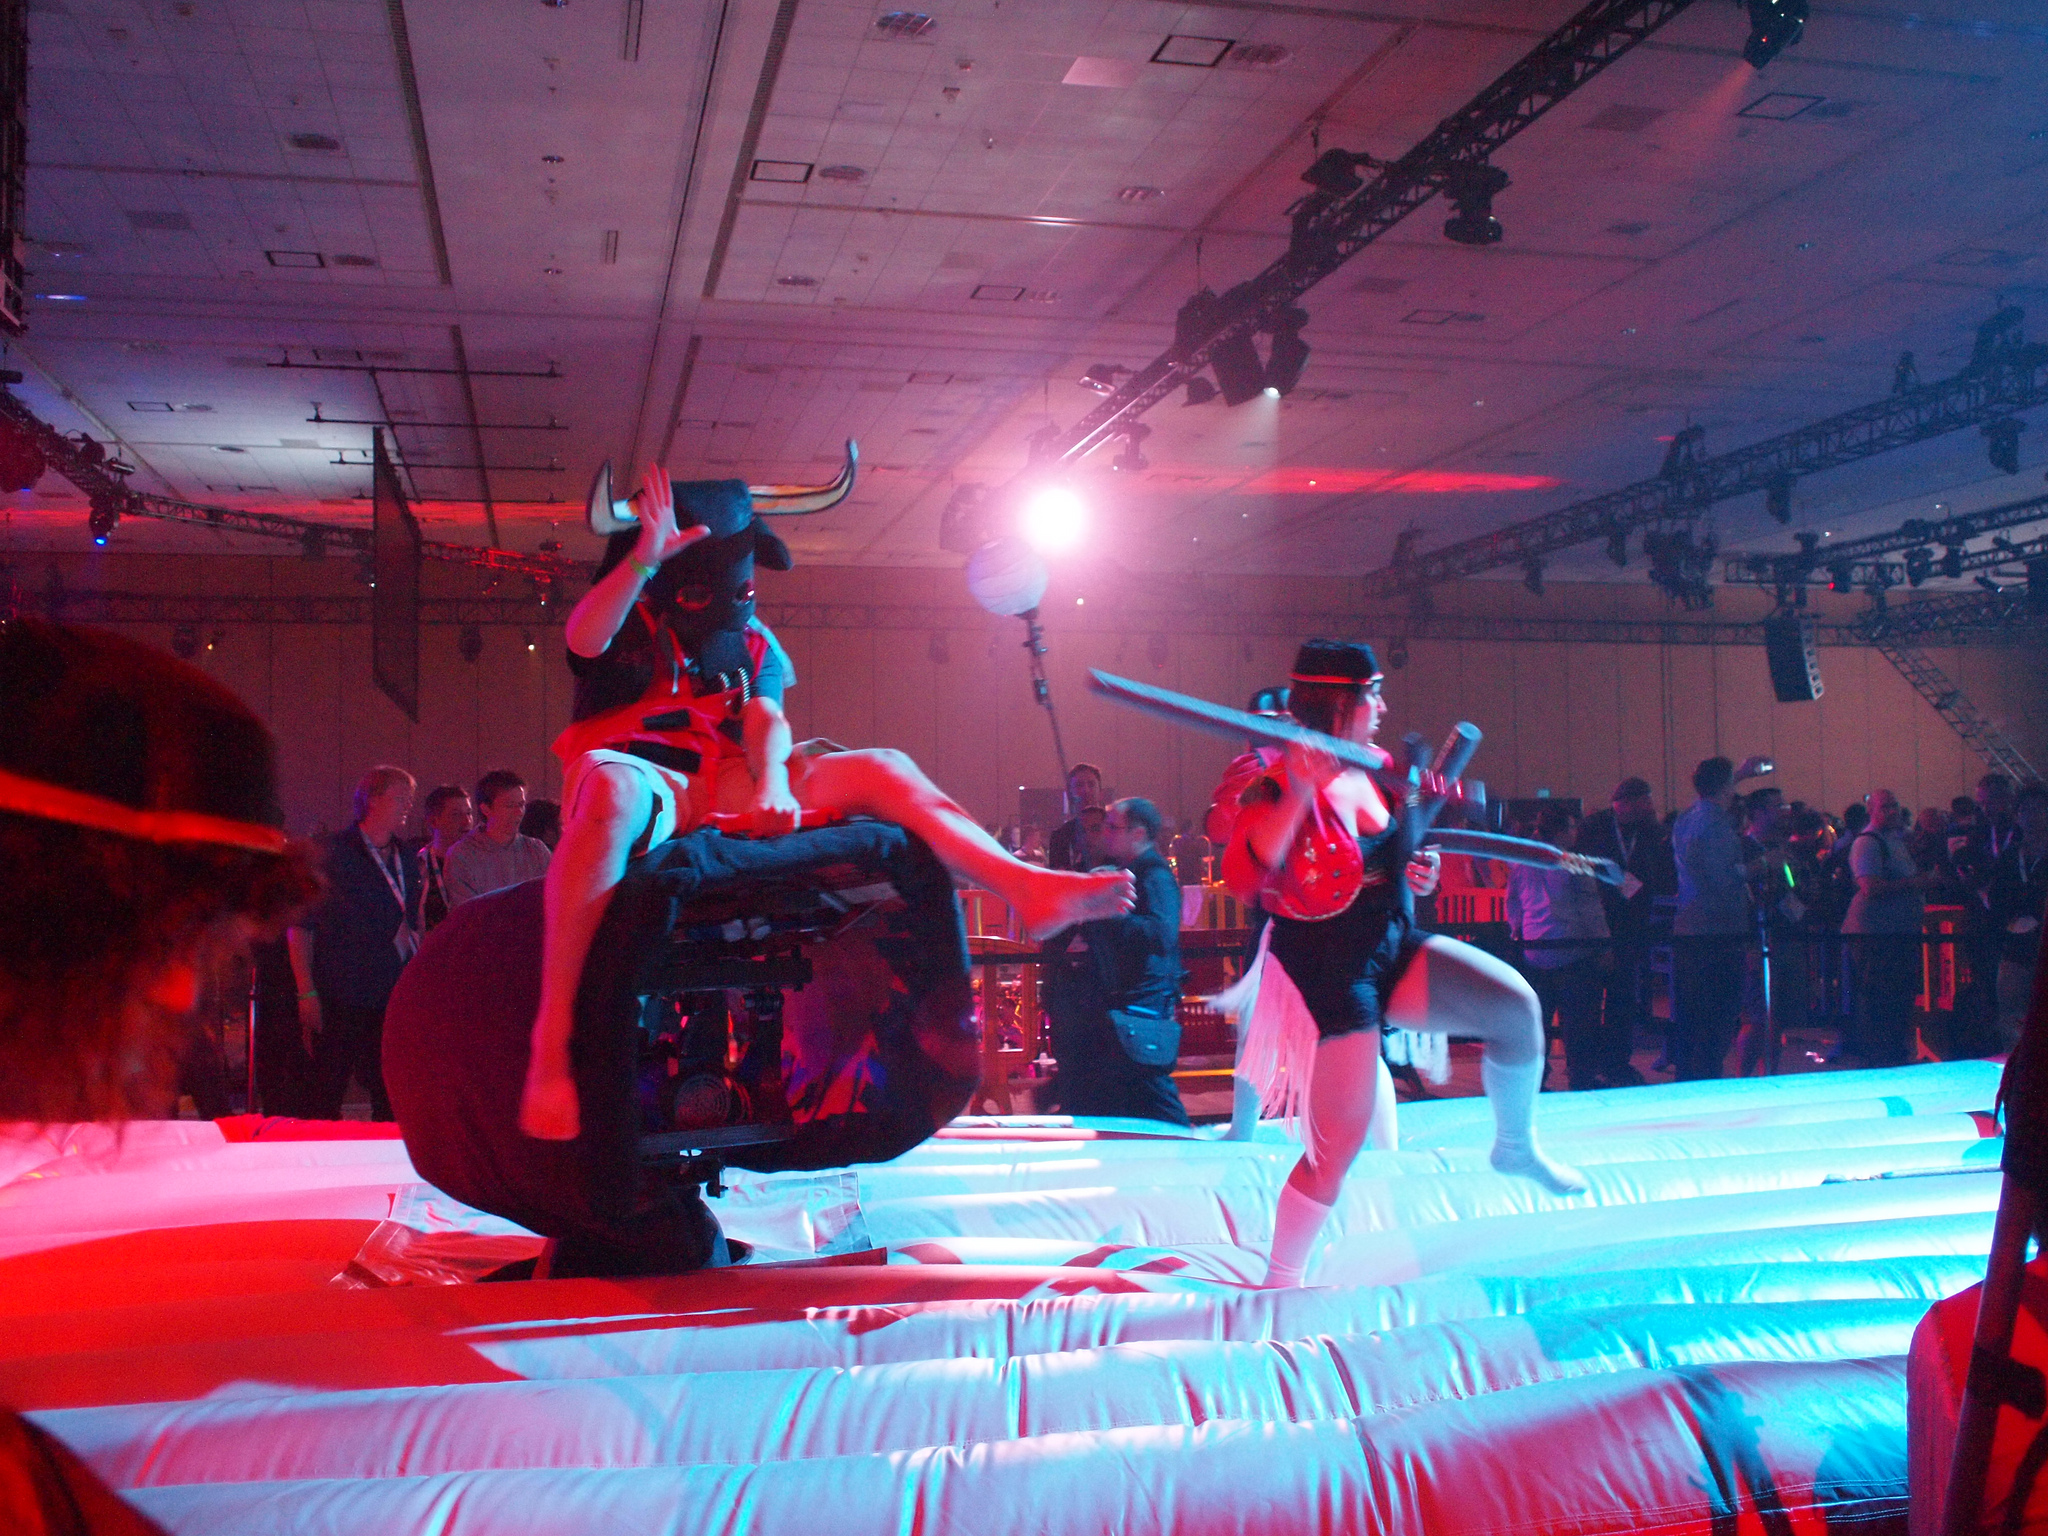 Compete Head-to-Head with Dueling Mechanical Bulls